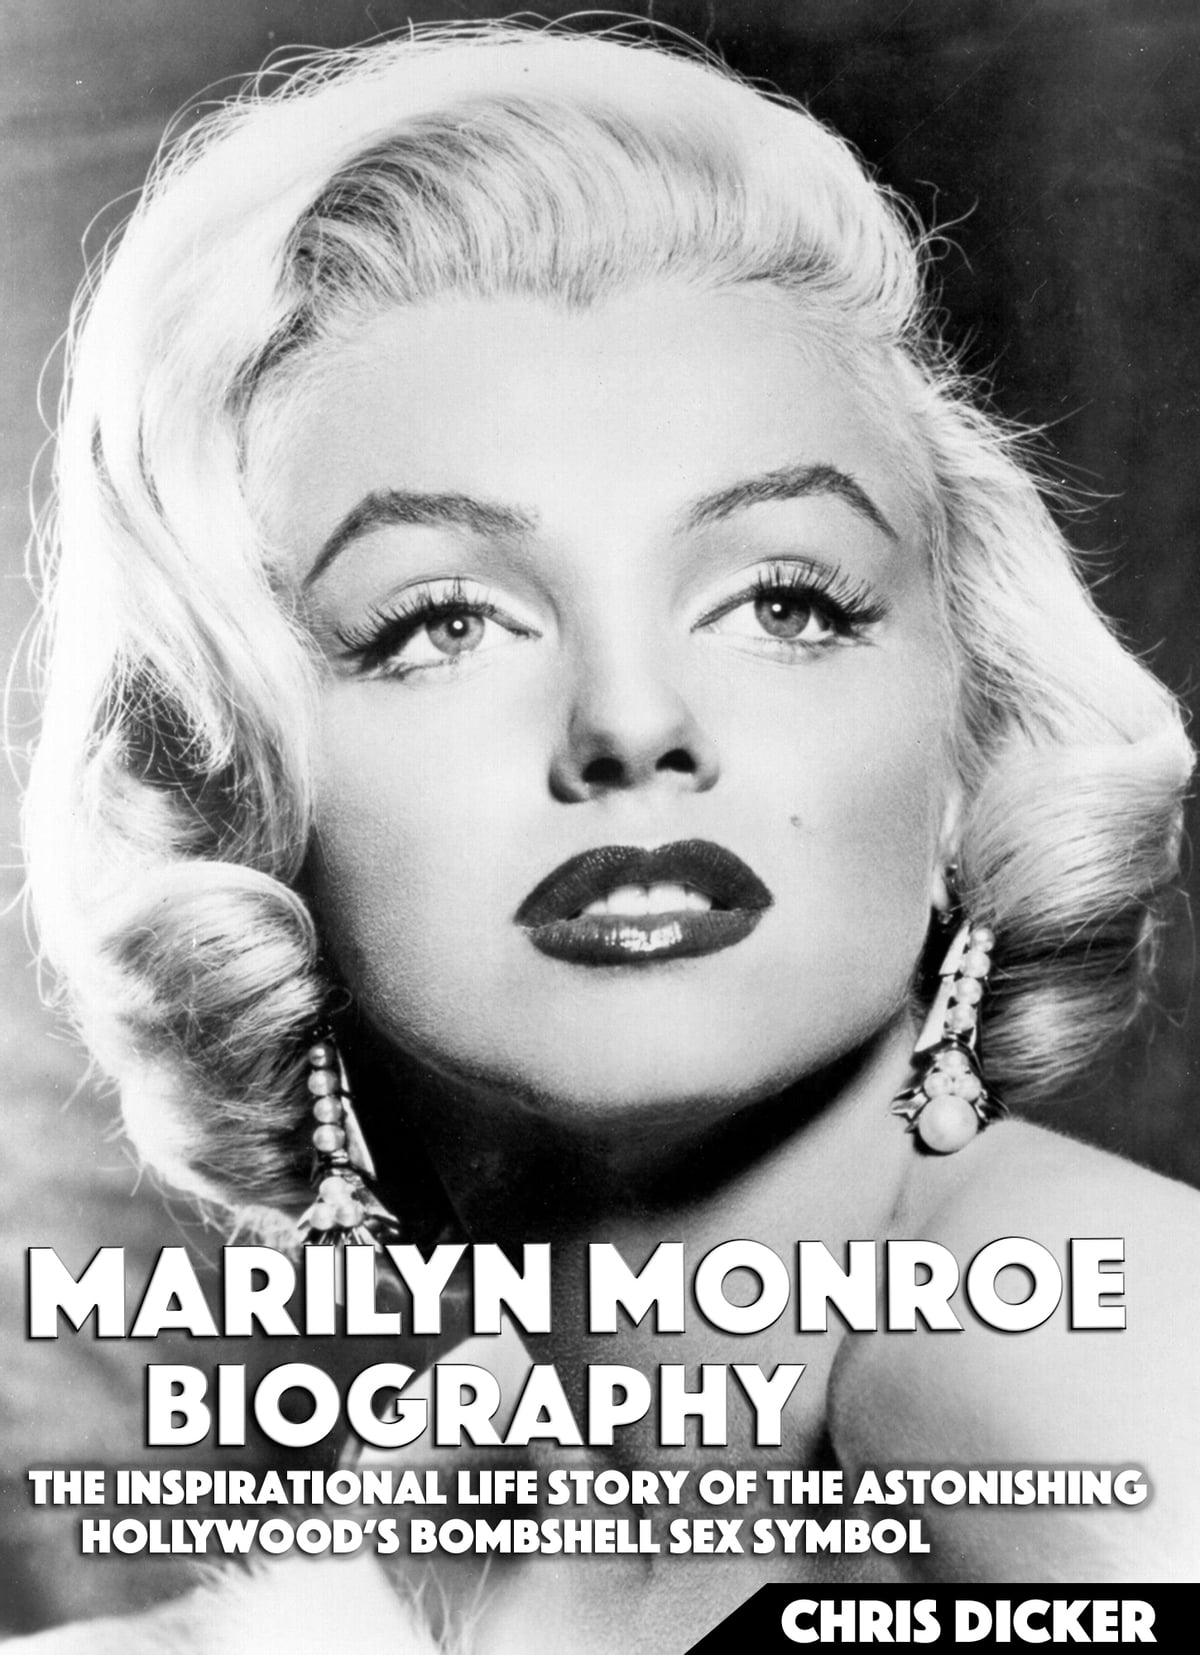 Marylin Monroe Marilyn Monroe Biography The Inspirational Life Story Of The Astonishing Hollywood S Bombshell Sex Symbol Ebook By Chris Dicker Rakuten Kobo